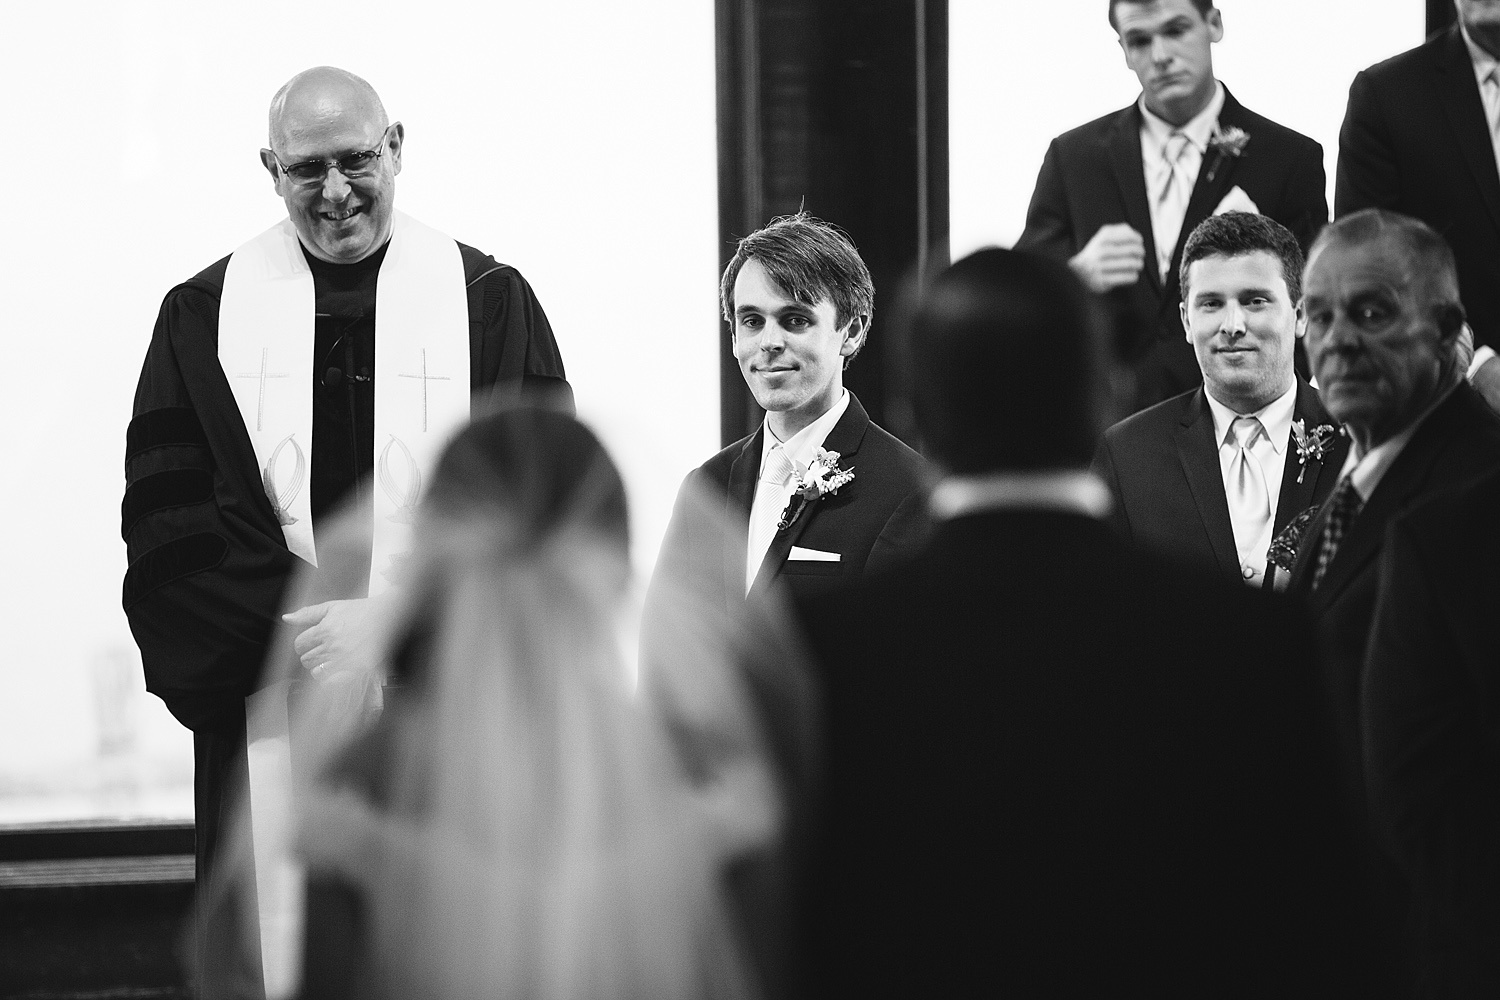 Jeremy-Russell-Cliffs-At-Glassy-Chapel-Wedding-15-27.jpg